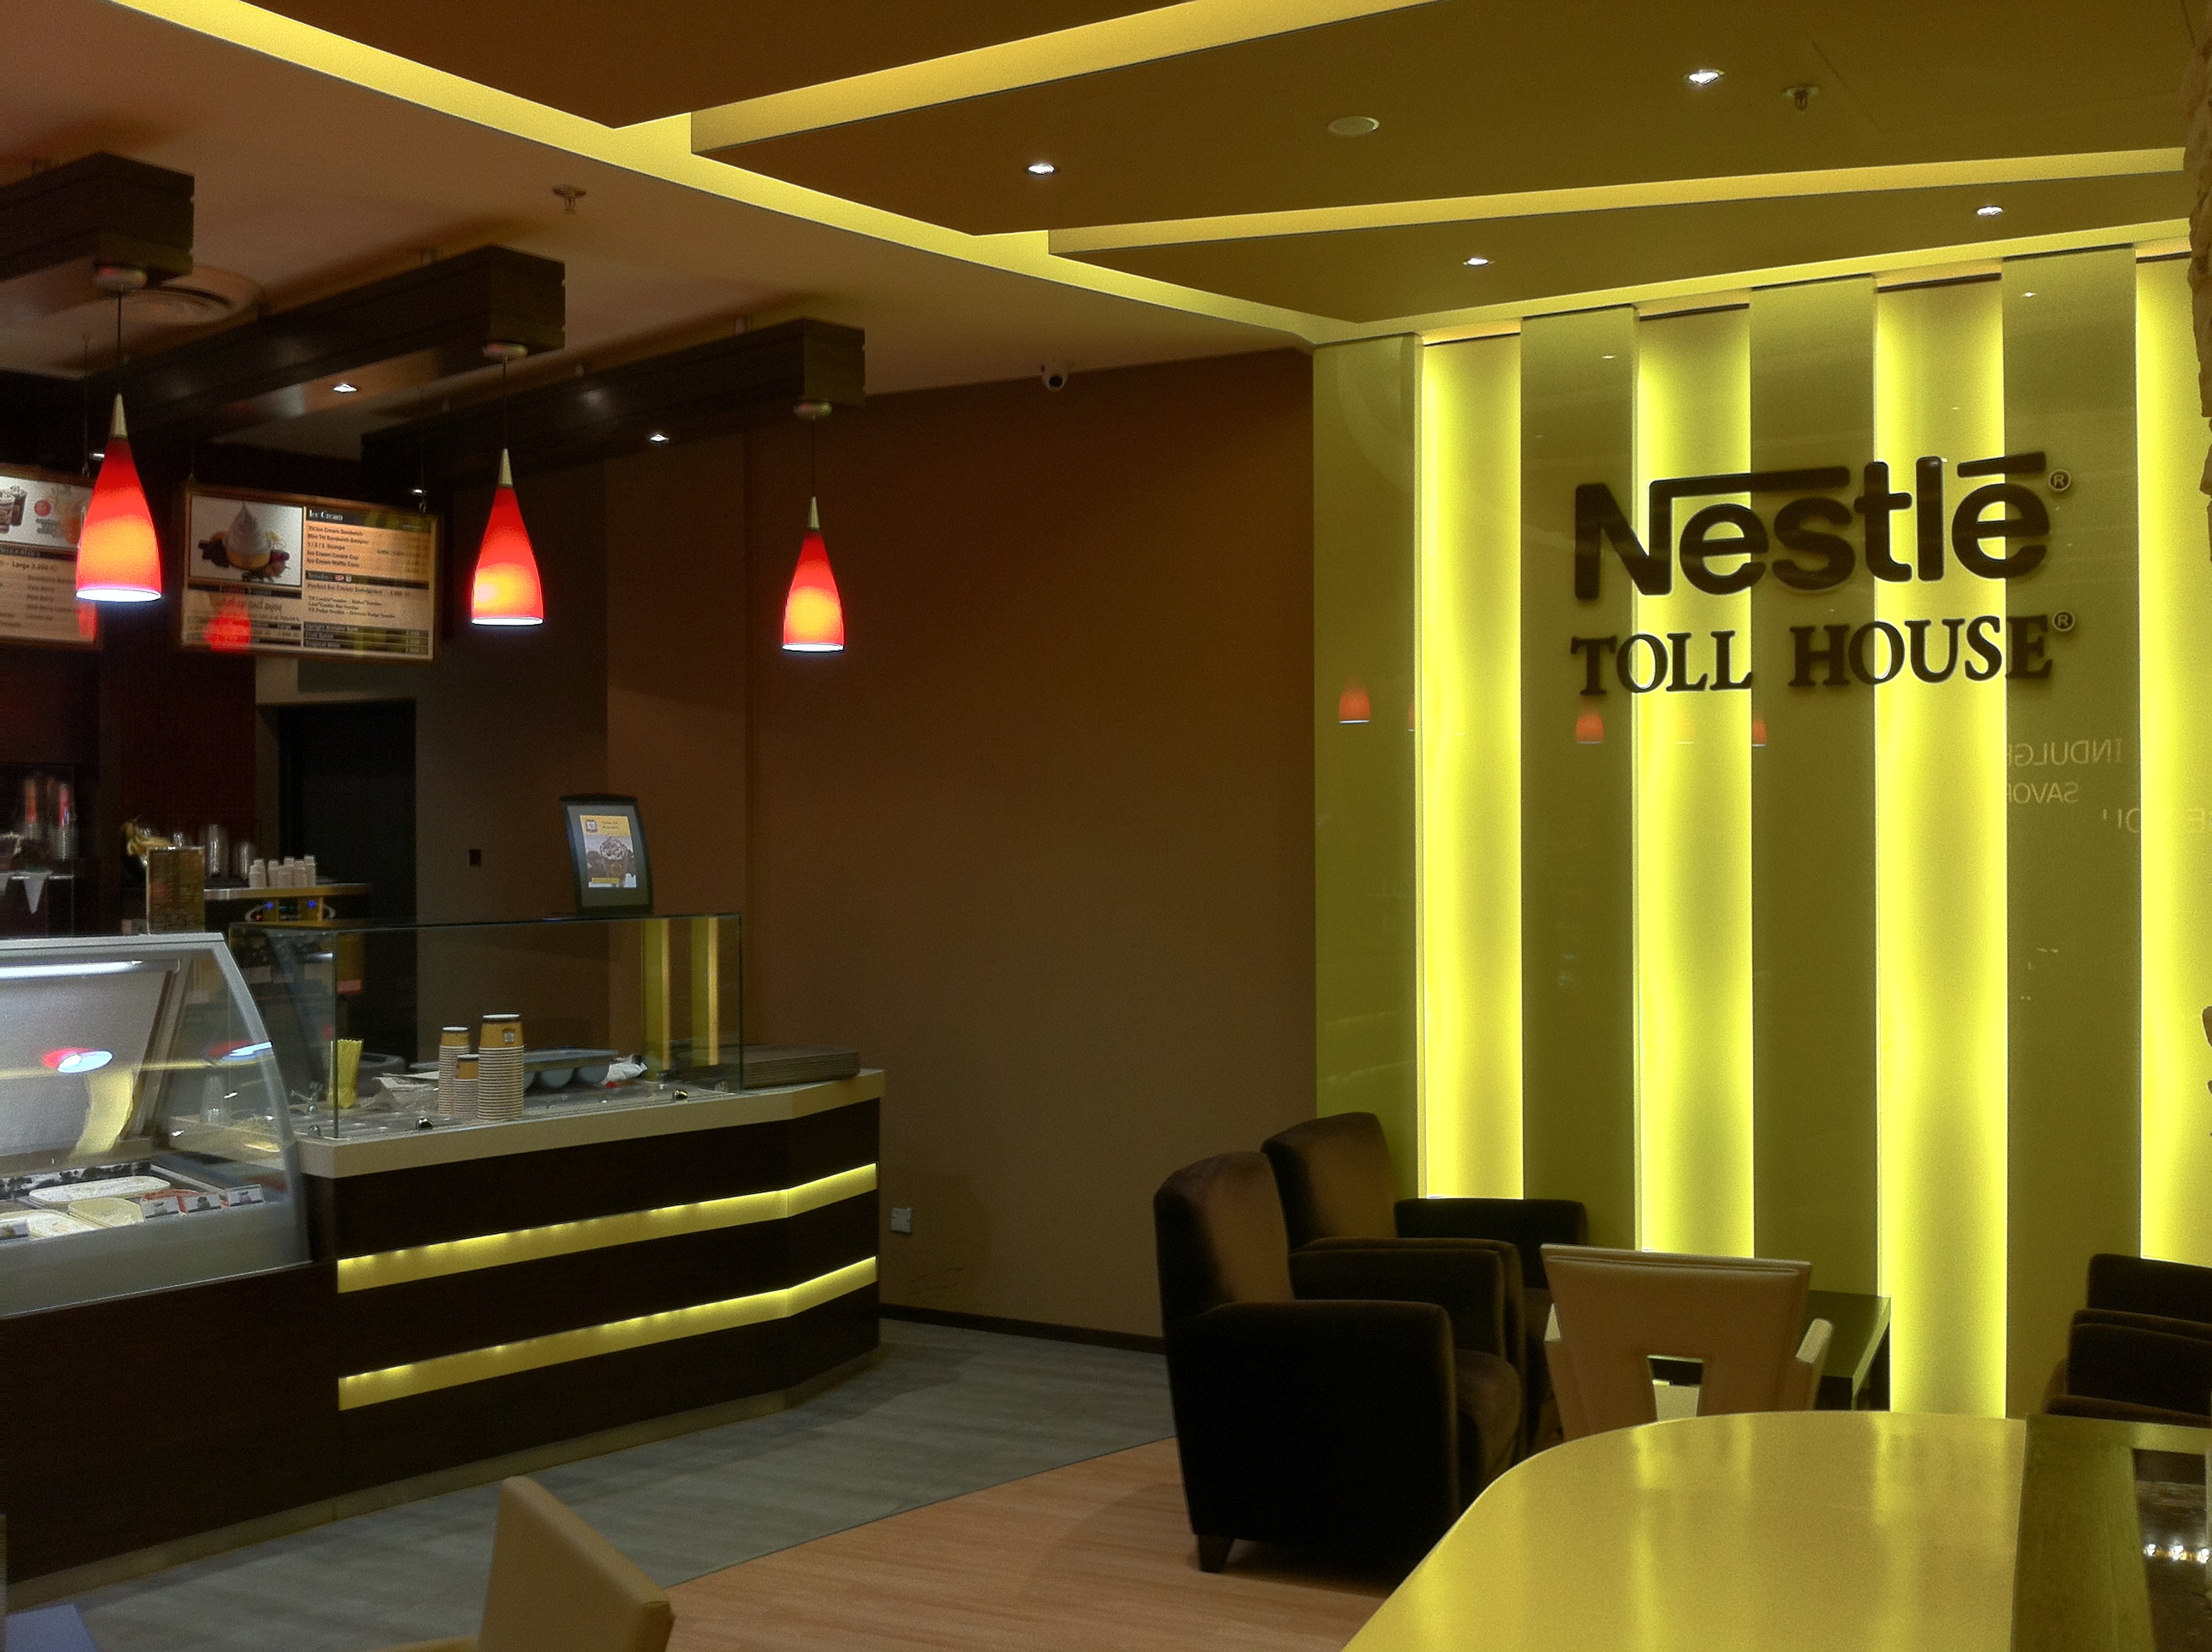 The Nestle Toll House Cafe